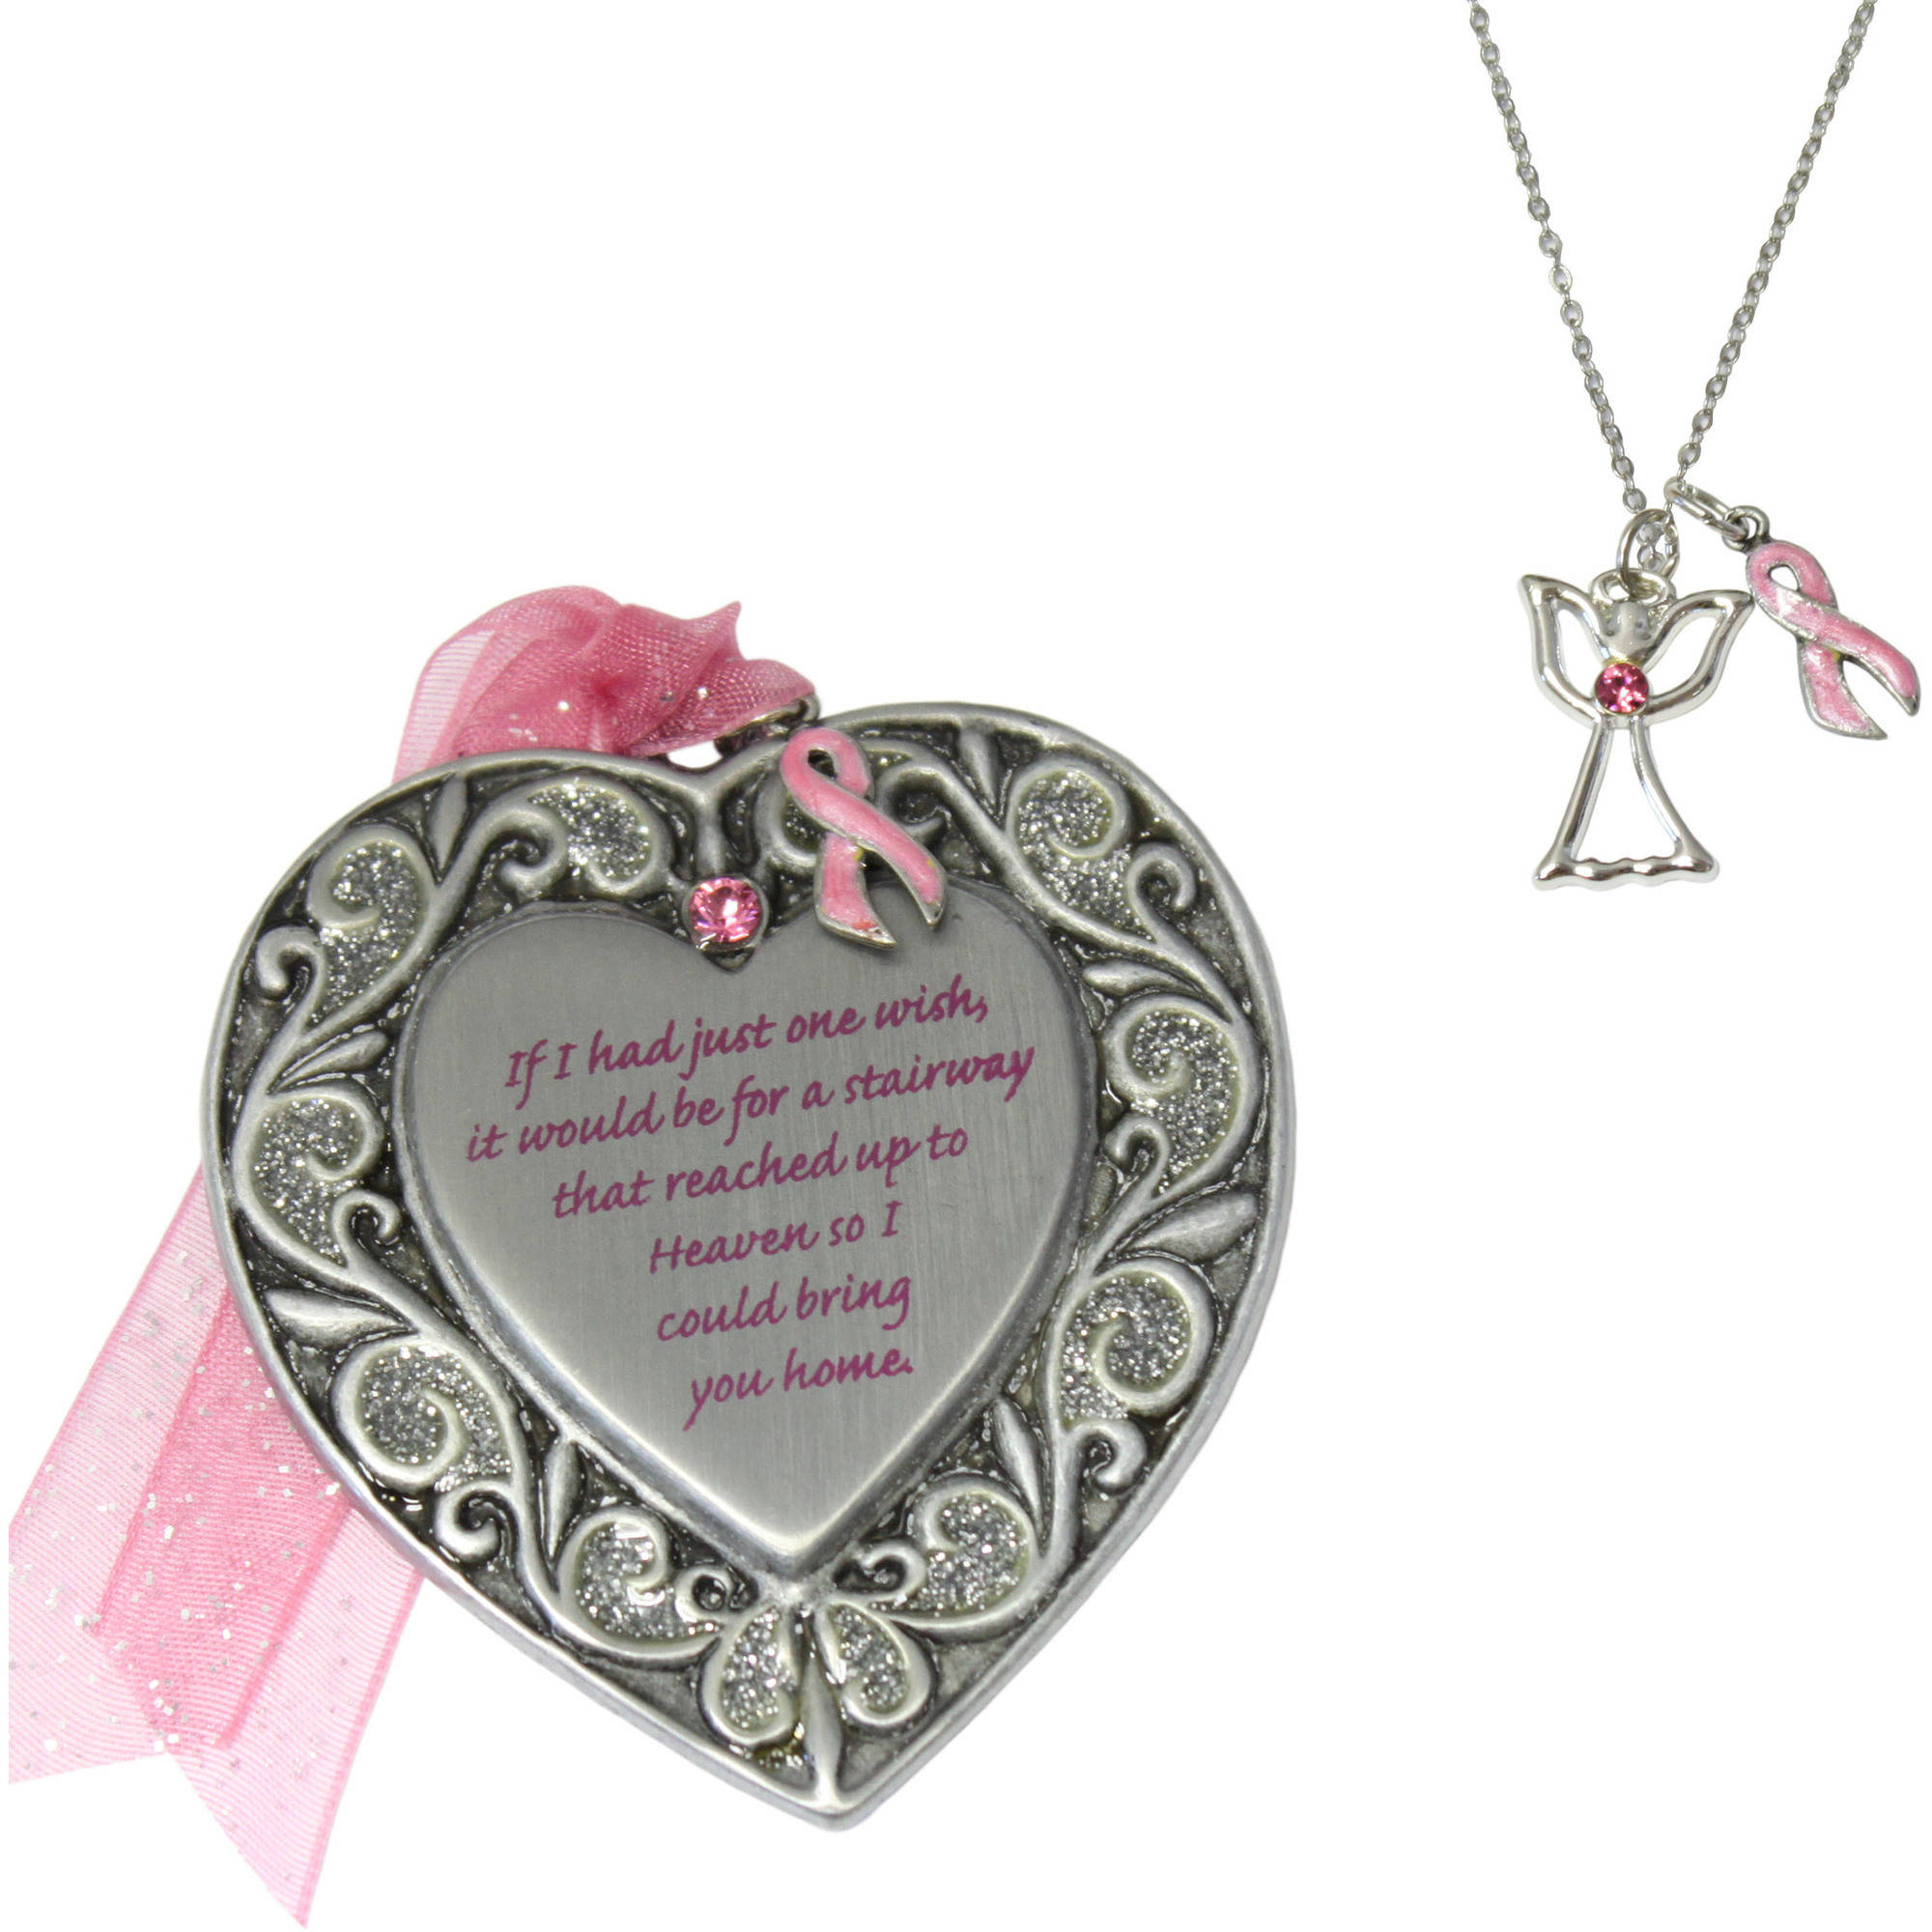 Personalized Gloria Duchin 2pc Breast Cancer Awareness Ornament and Necklace Set, 18""